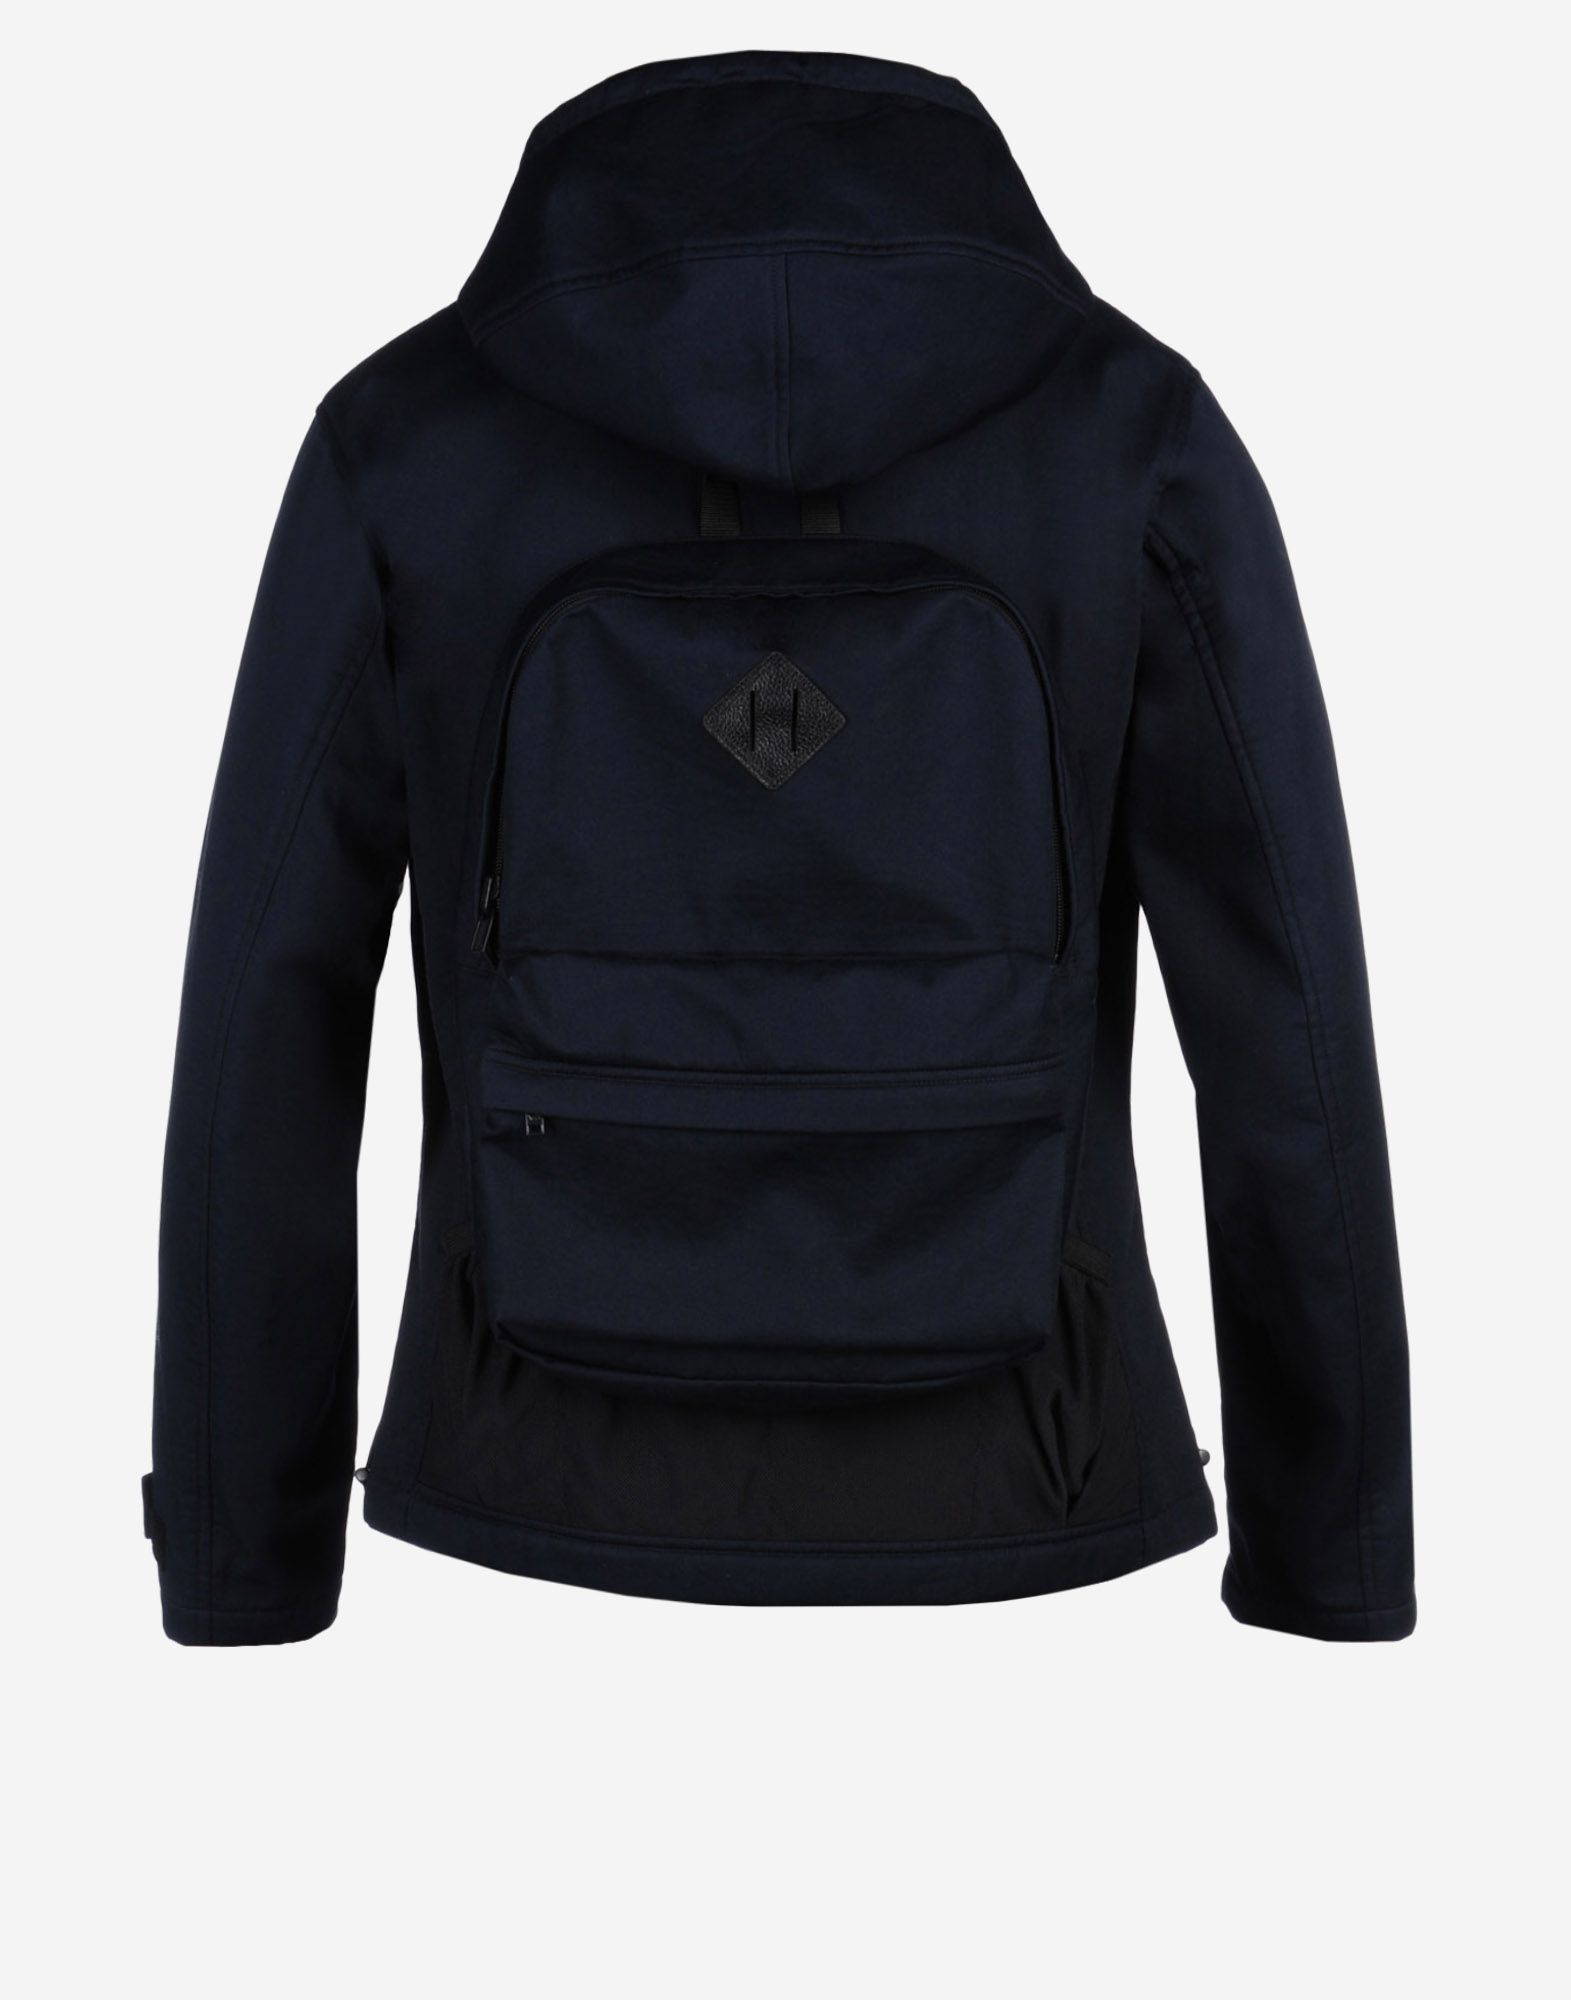 Jacket Backpack Y 3 3 Layer Backpack Jkt Jackets For Men Adidas Y 3 Official Store